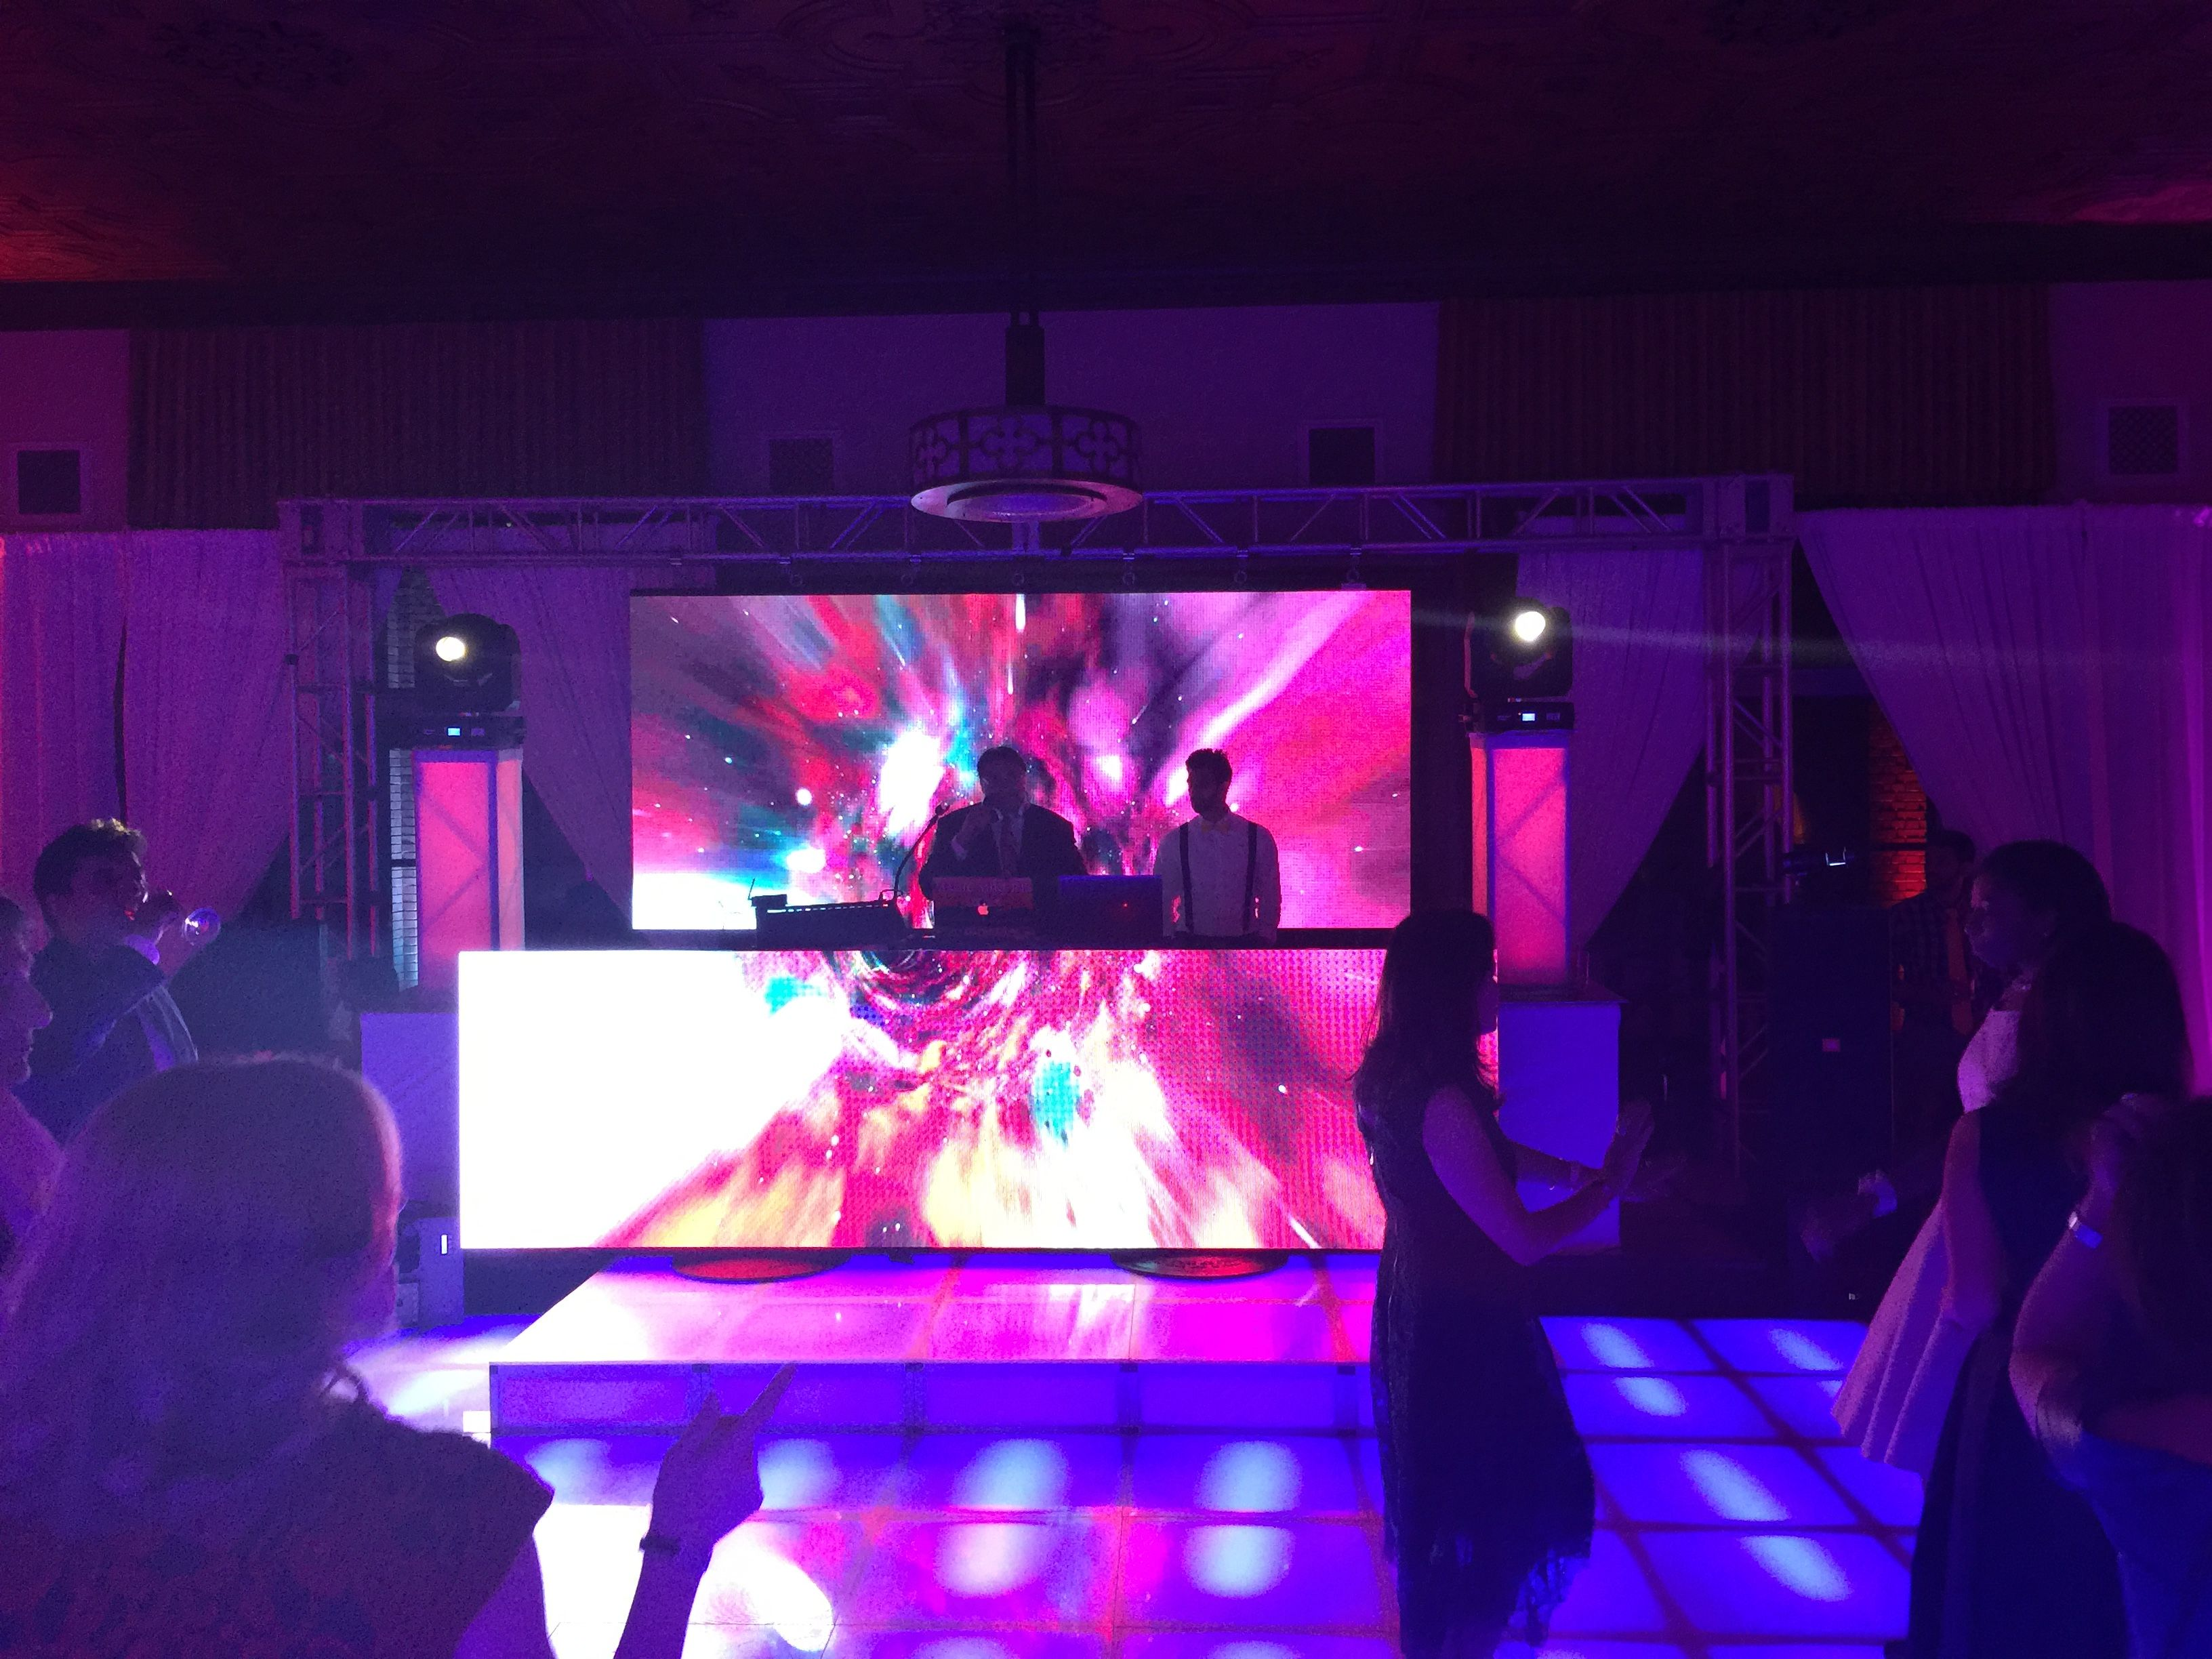 Led Video Wall Dj Booth With Lighted Stage Dance Floor New York Athletic Club Penthouse Led Video Wall Dj Booth Dance Floor